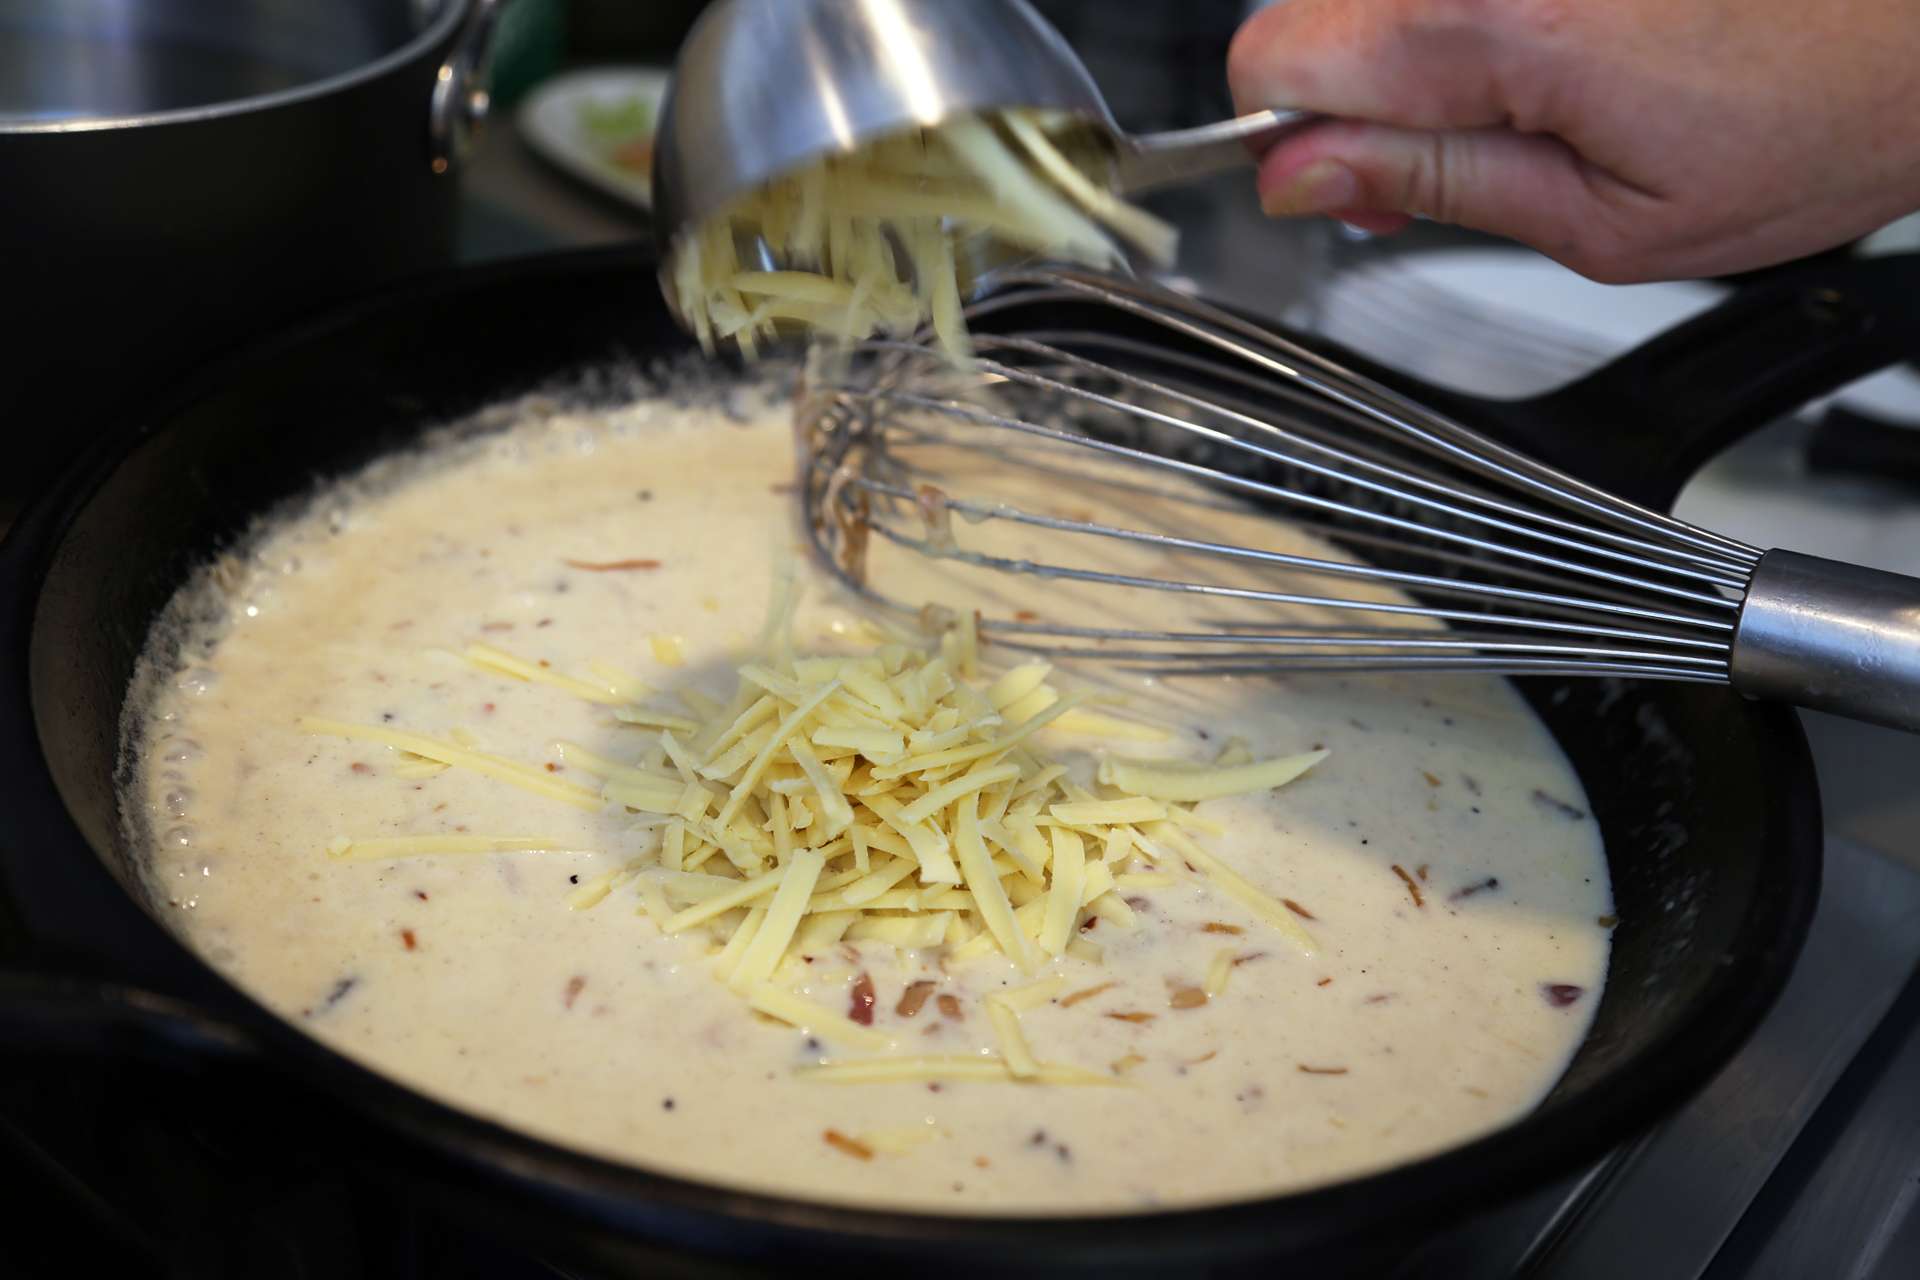 Add 1/2 cup of the cheese and stir until smooth.